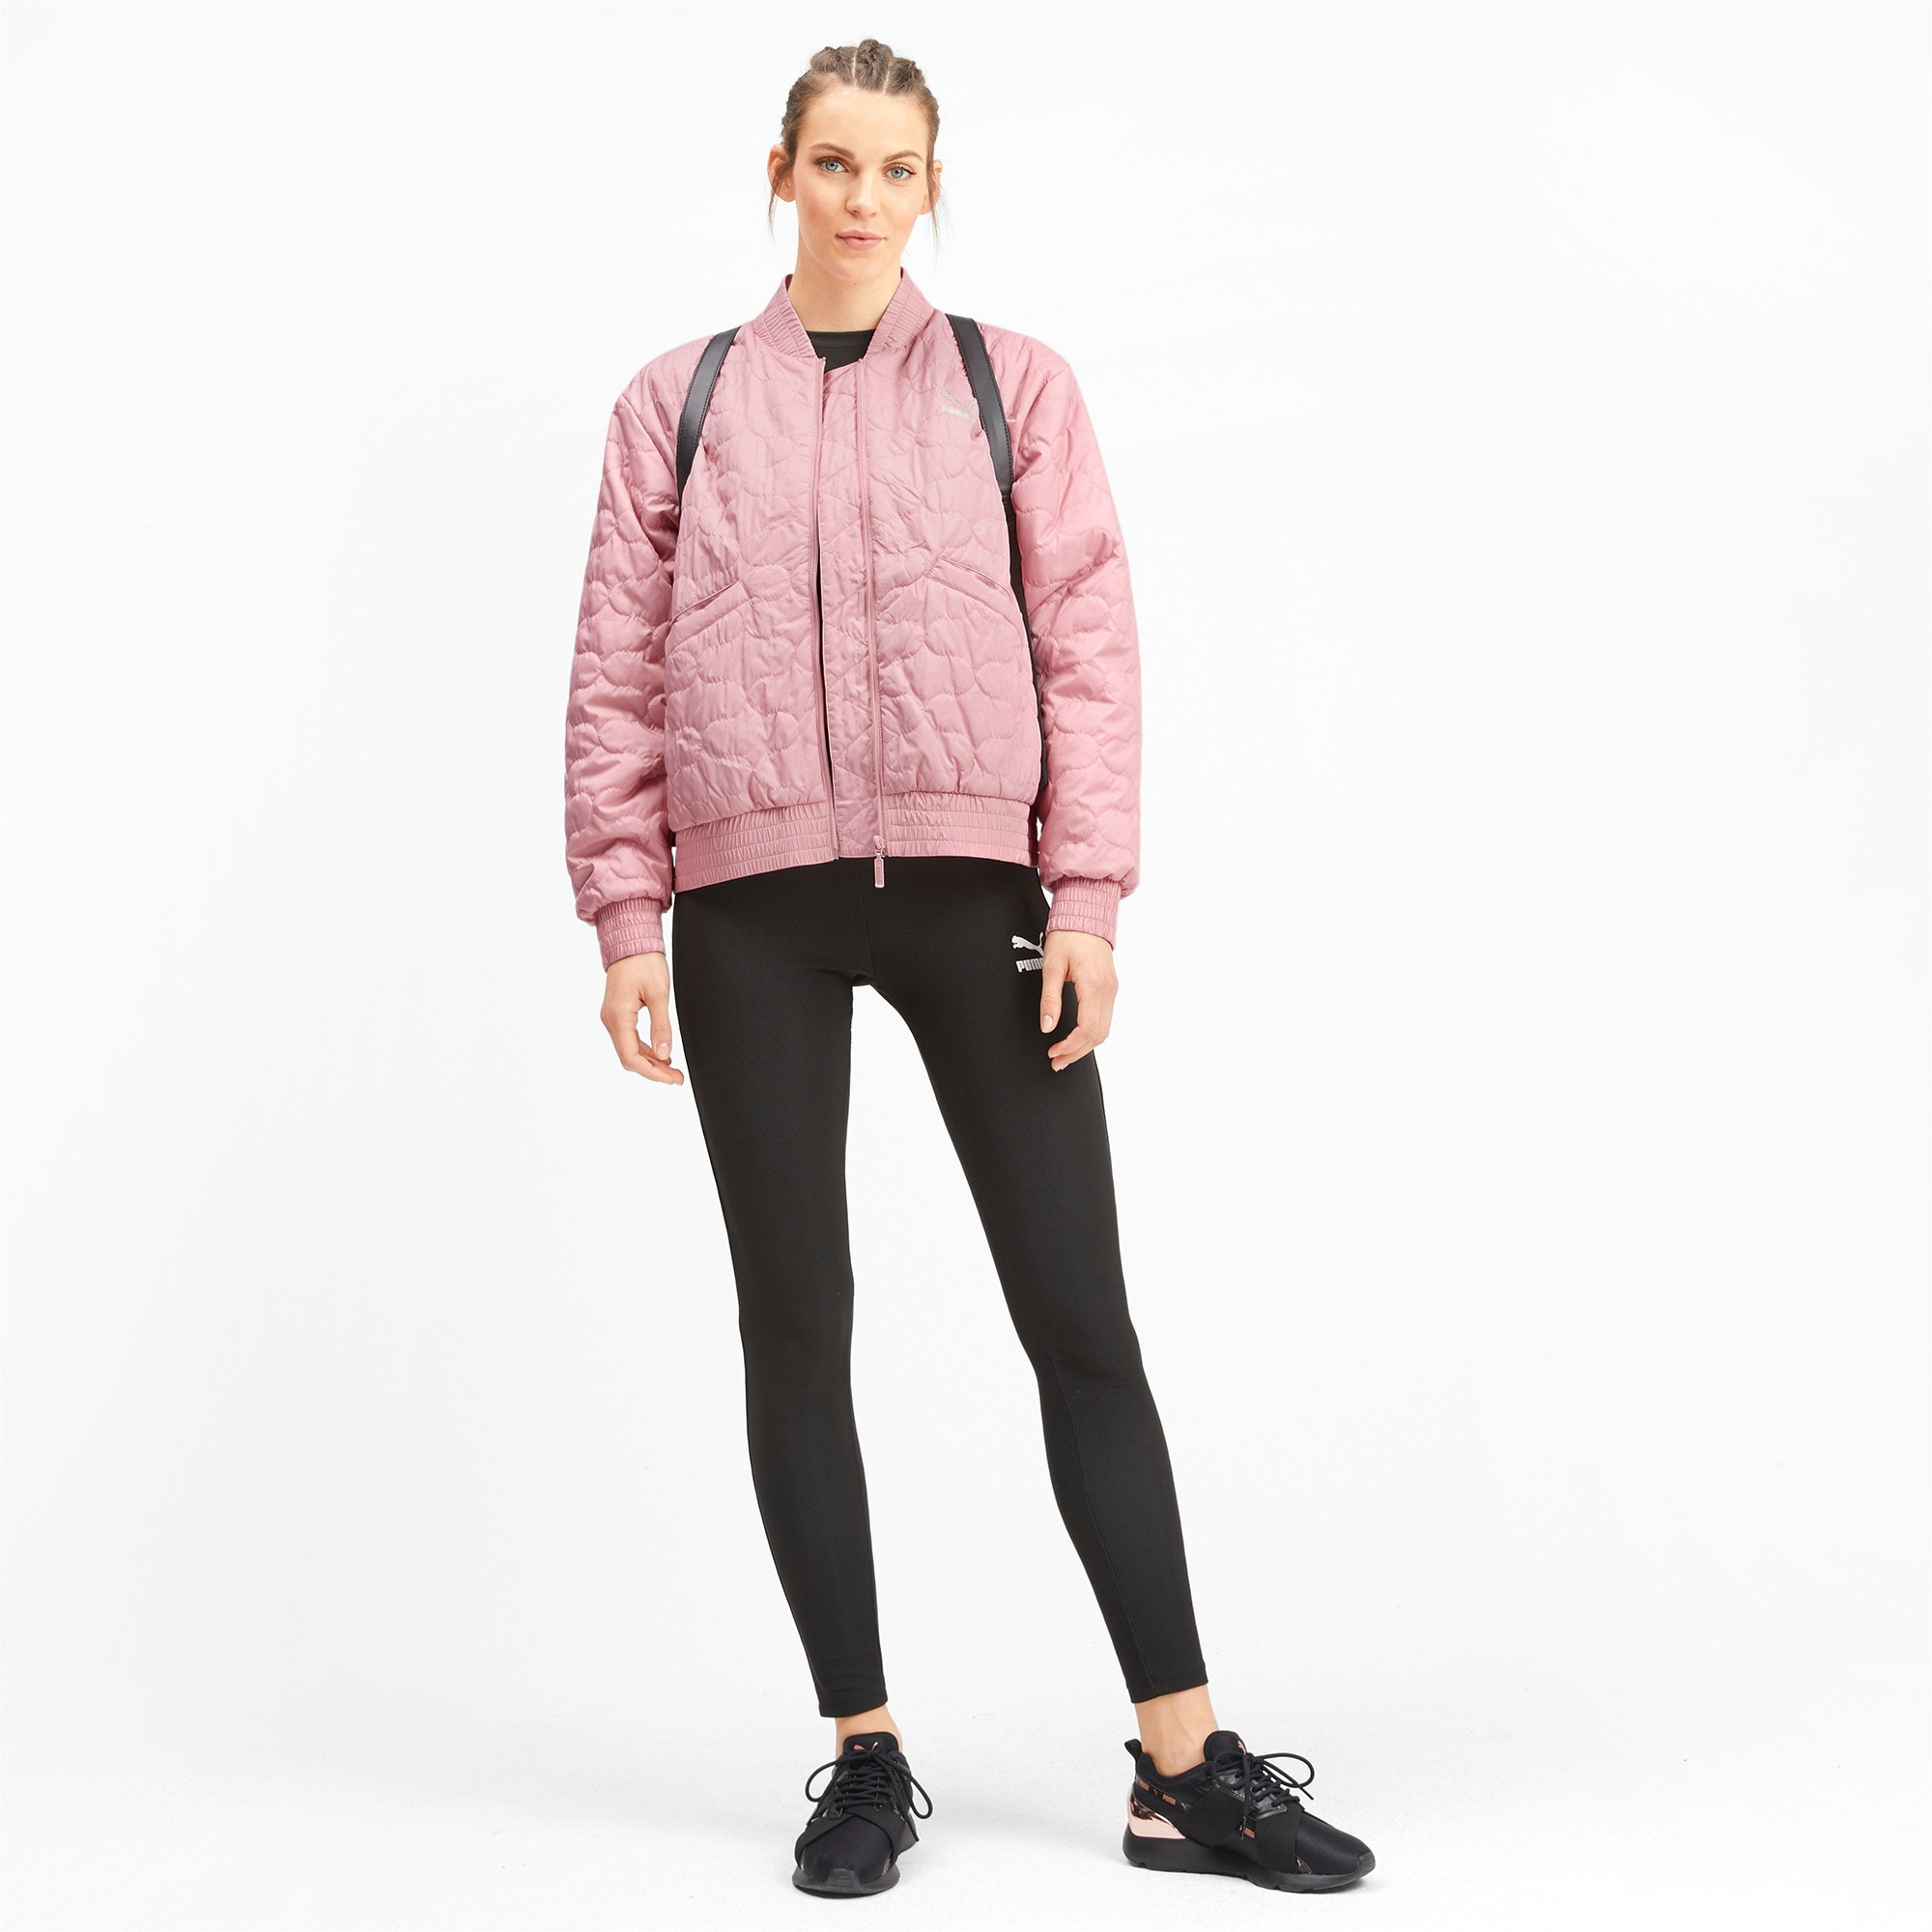 Thumbnail 4 of Damen Gewebte Bomberjacke, Bridal Rose, medium